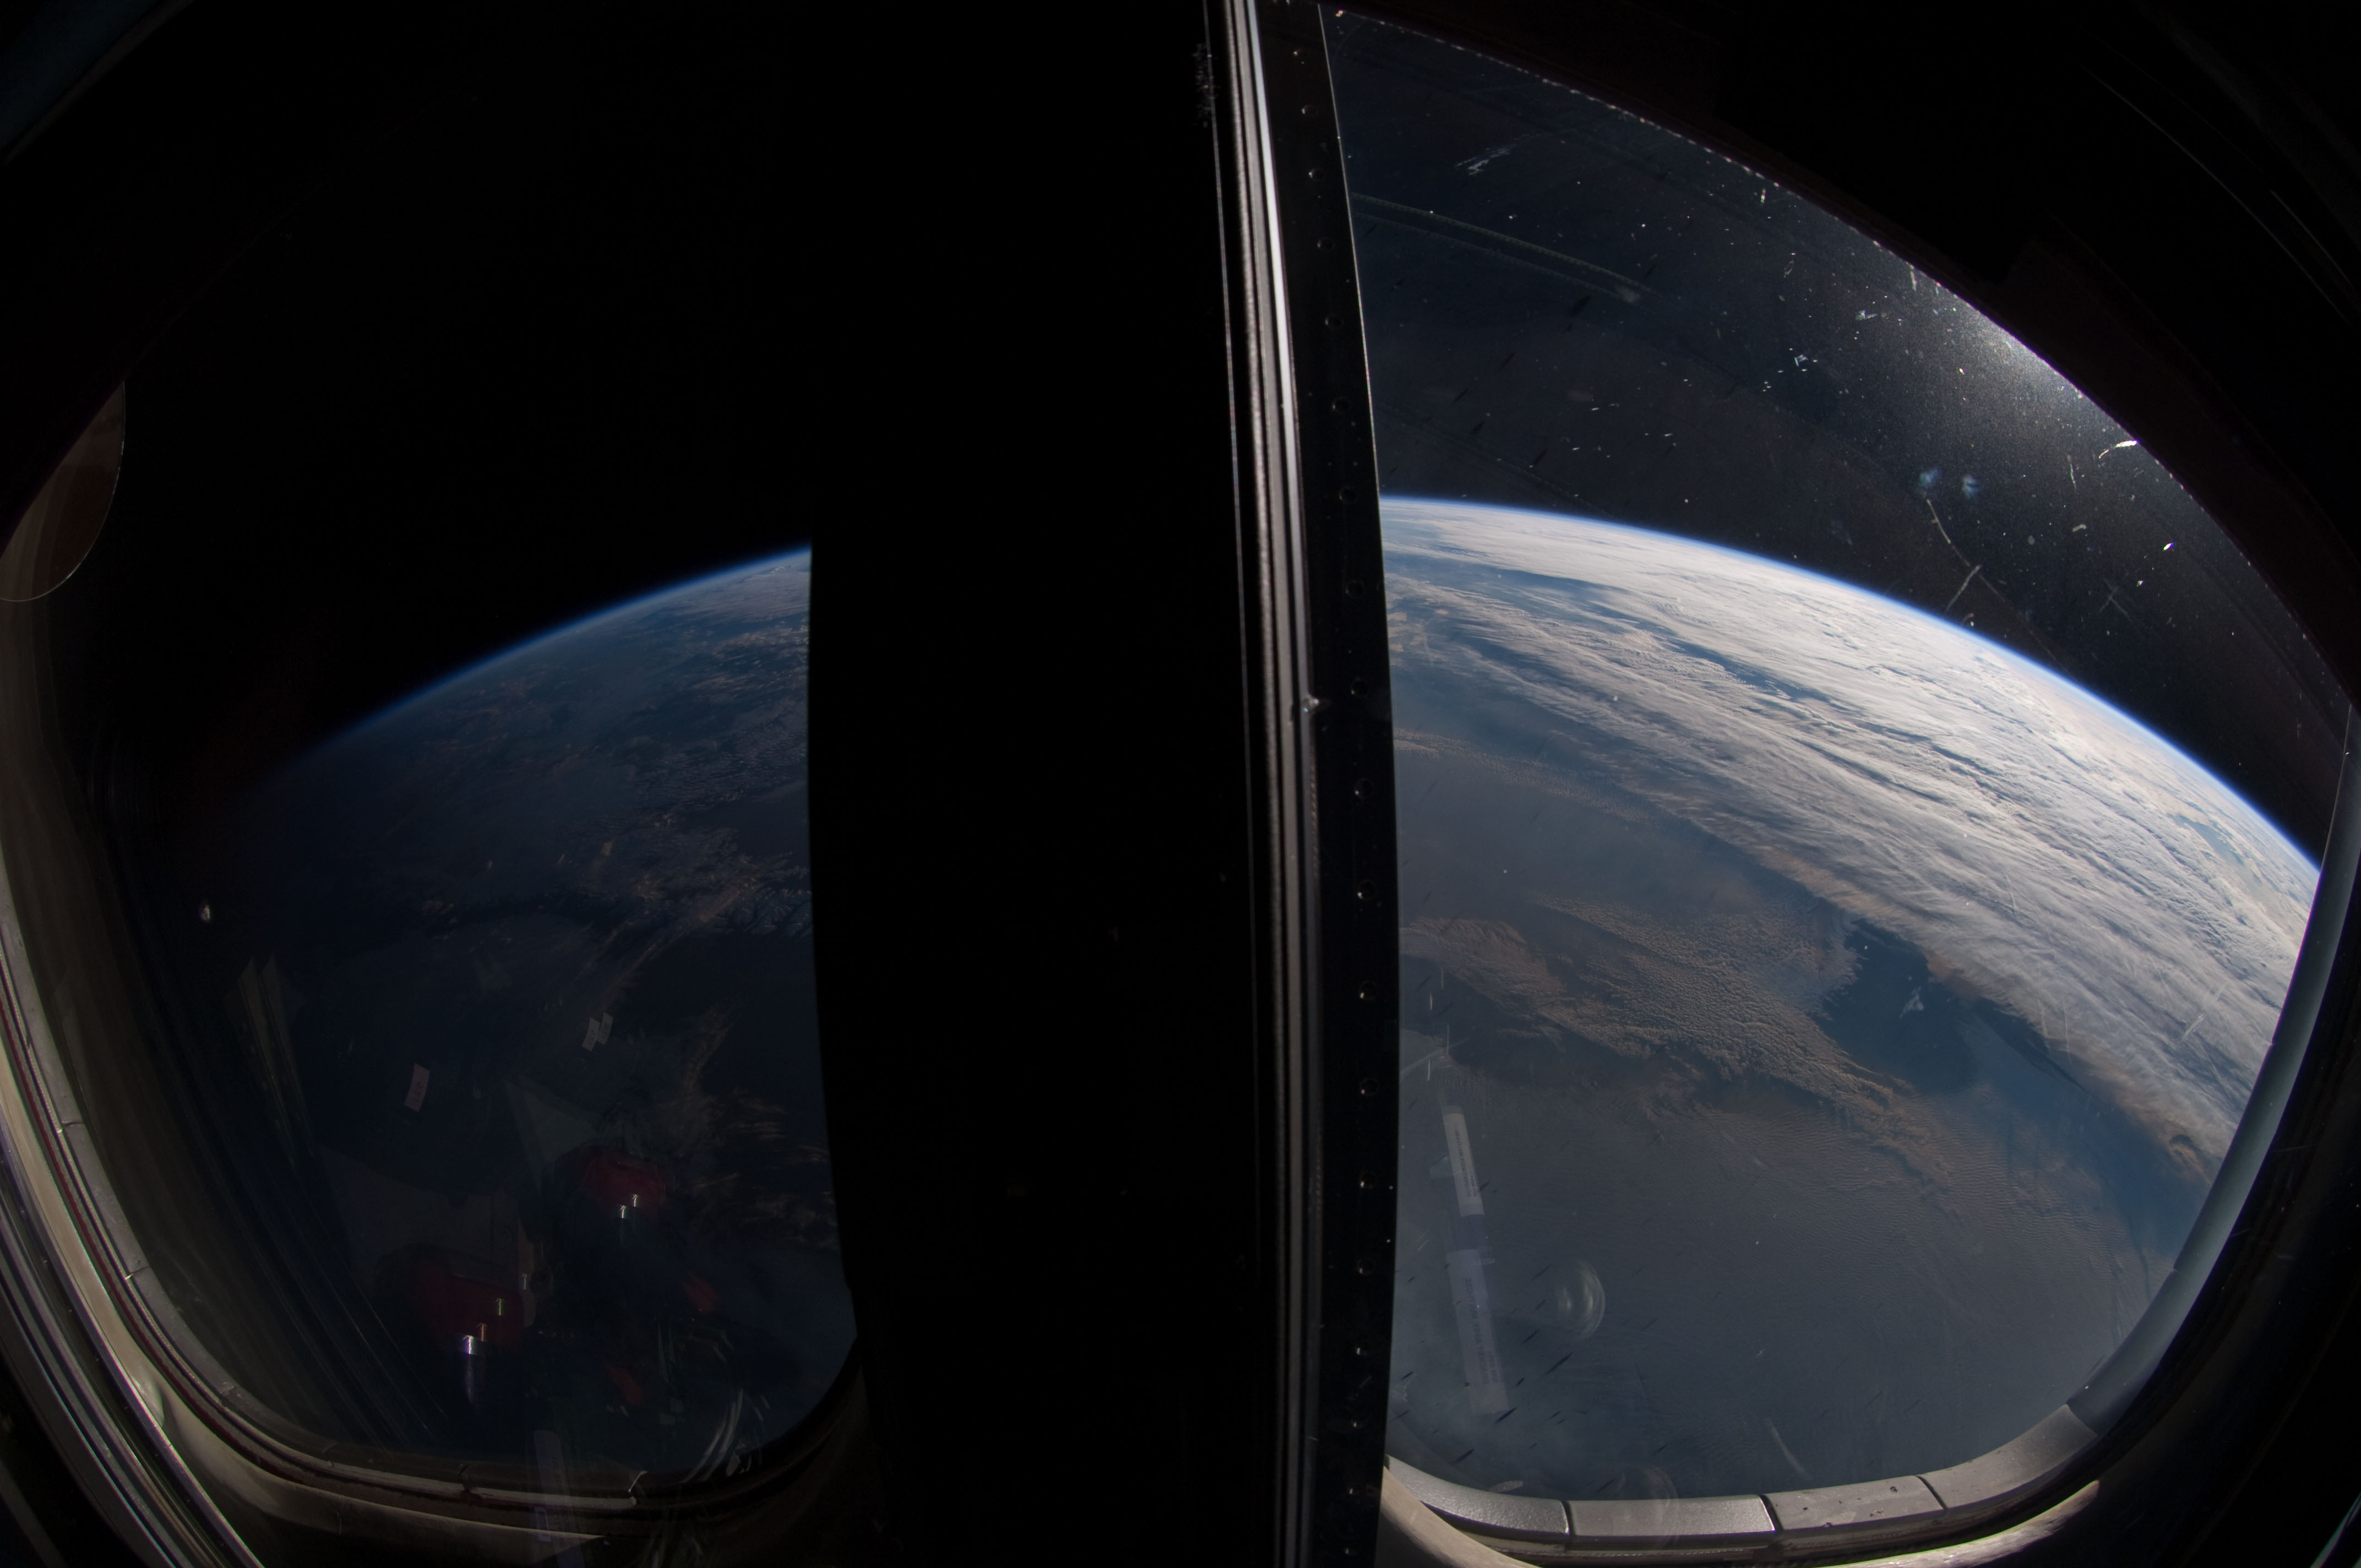 S126E026811 - STS-126 - Earth Observations taken by STS-126 Crewmember